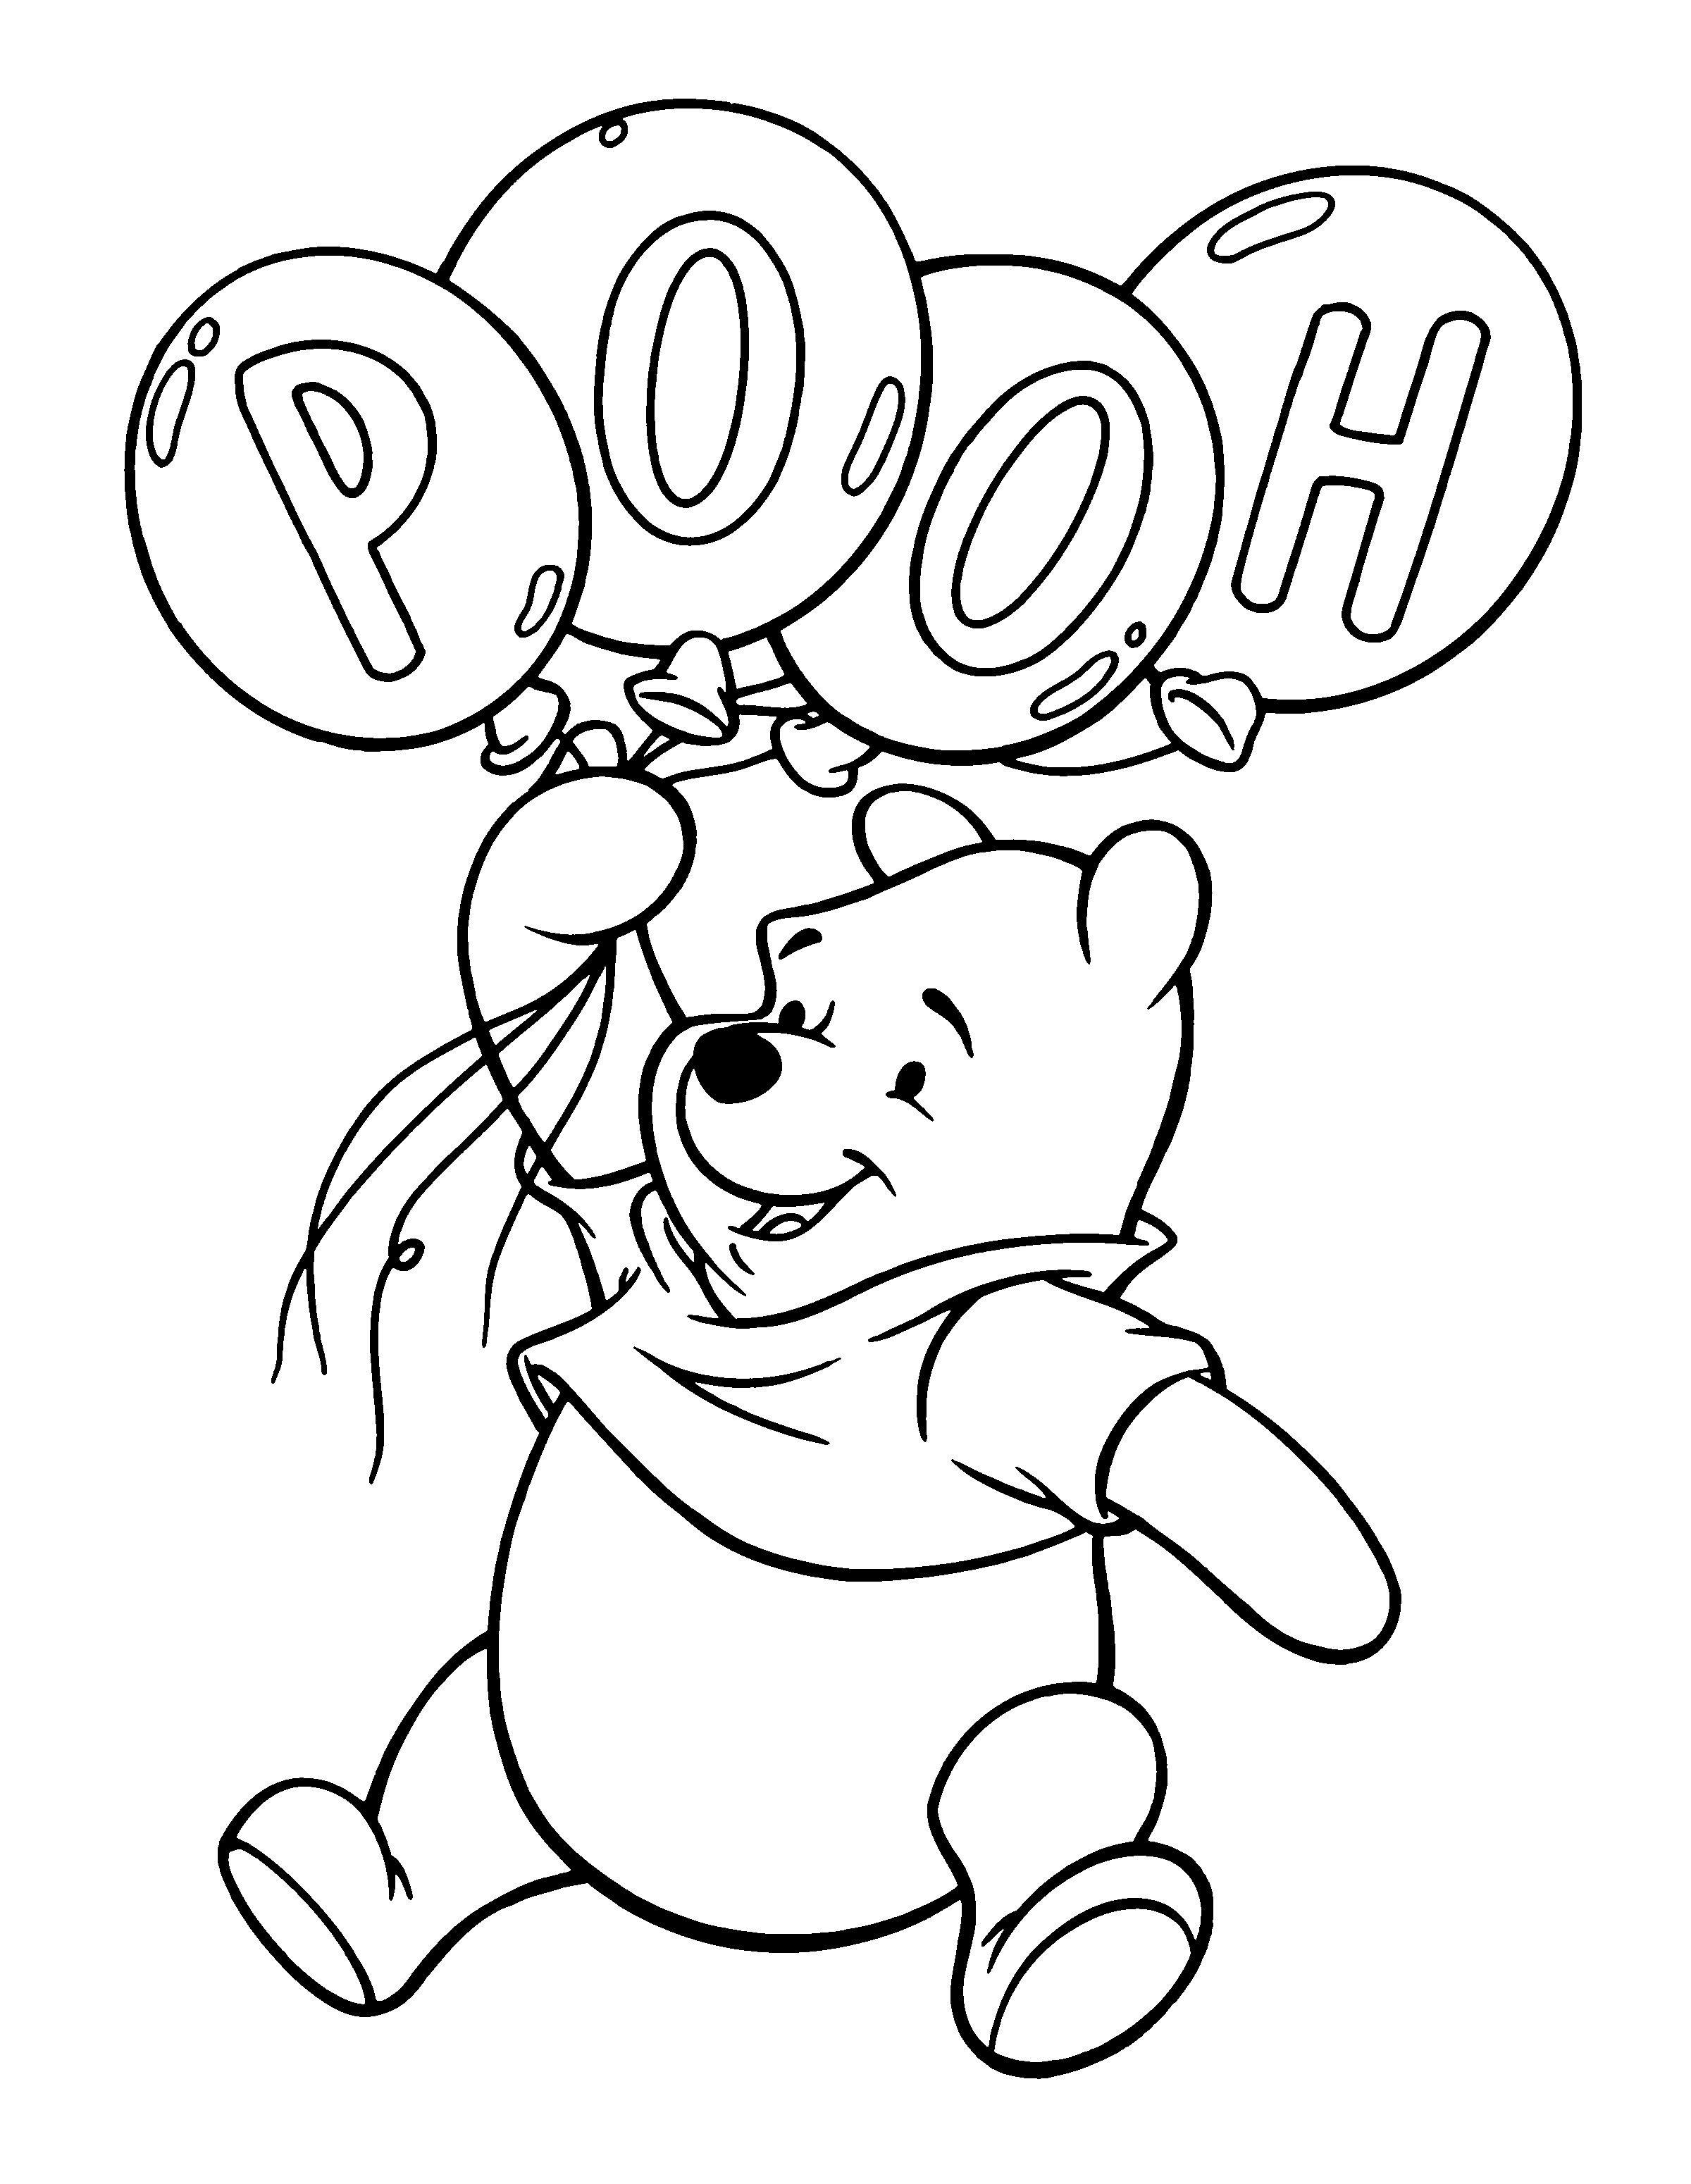 punto croce winnie the pooh - Cerca con Google | coloring pages ...